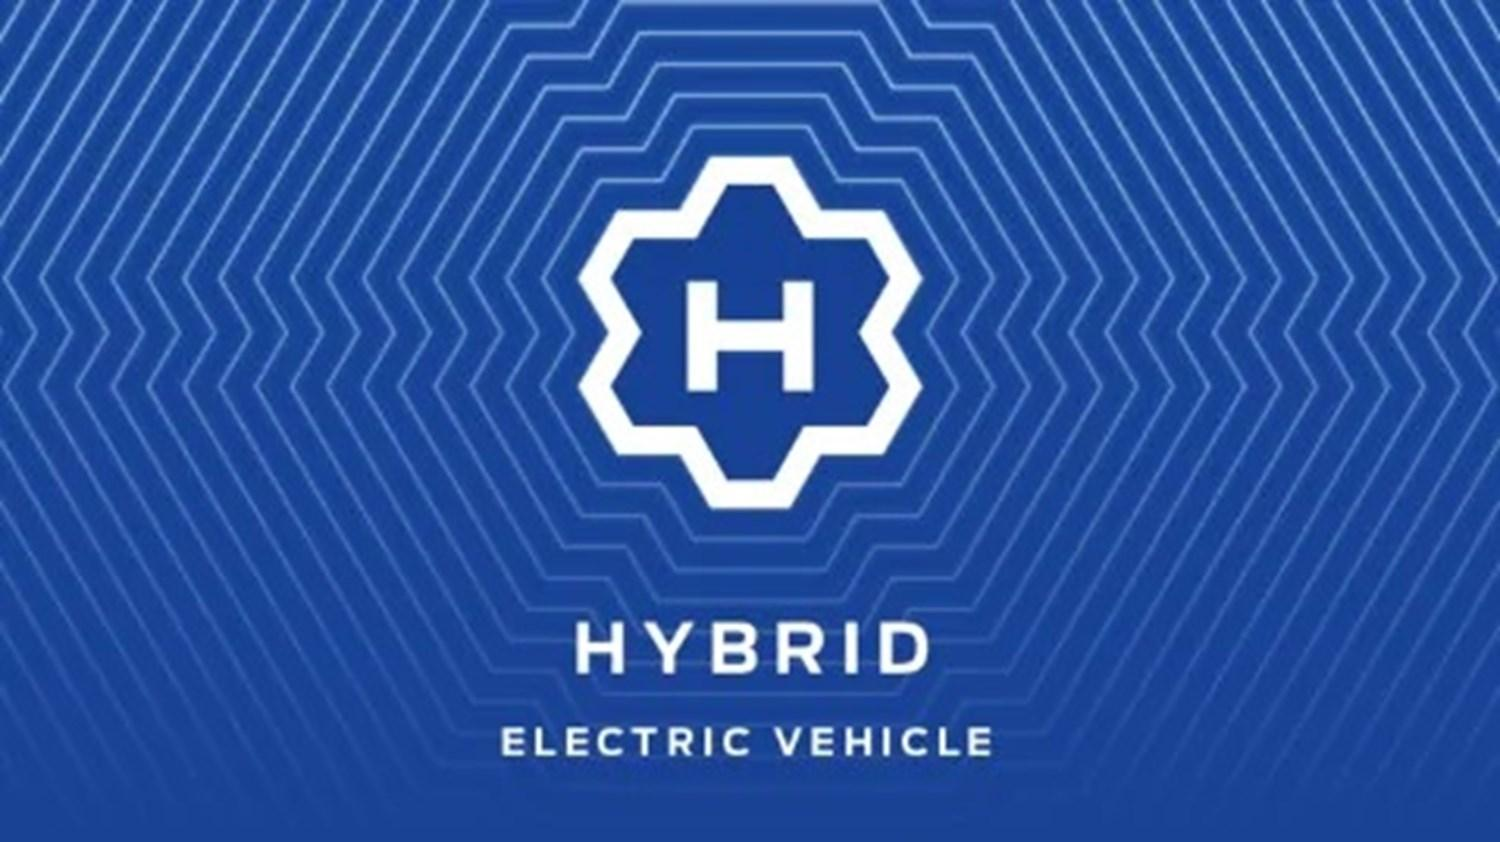 Hybrid Electric Vehicle Image